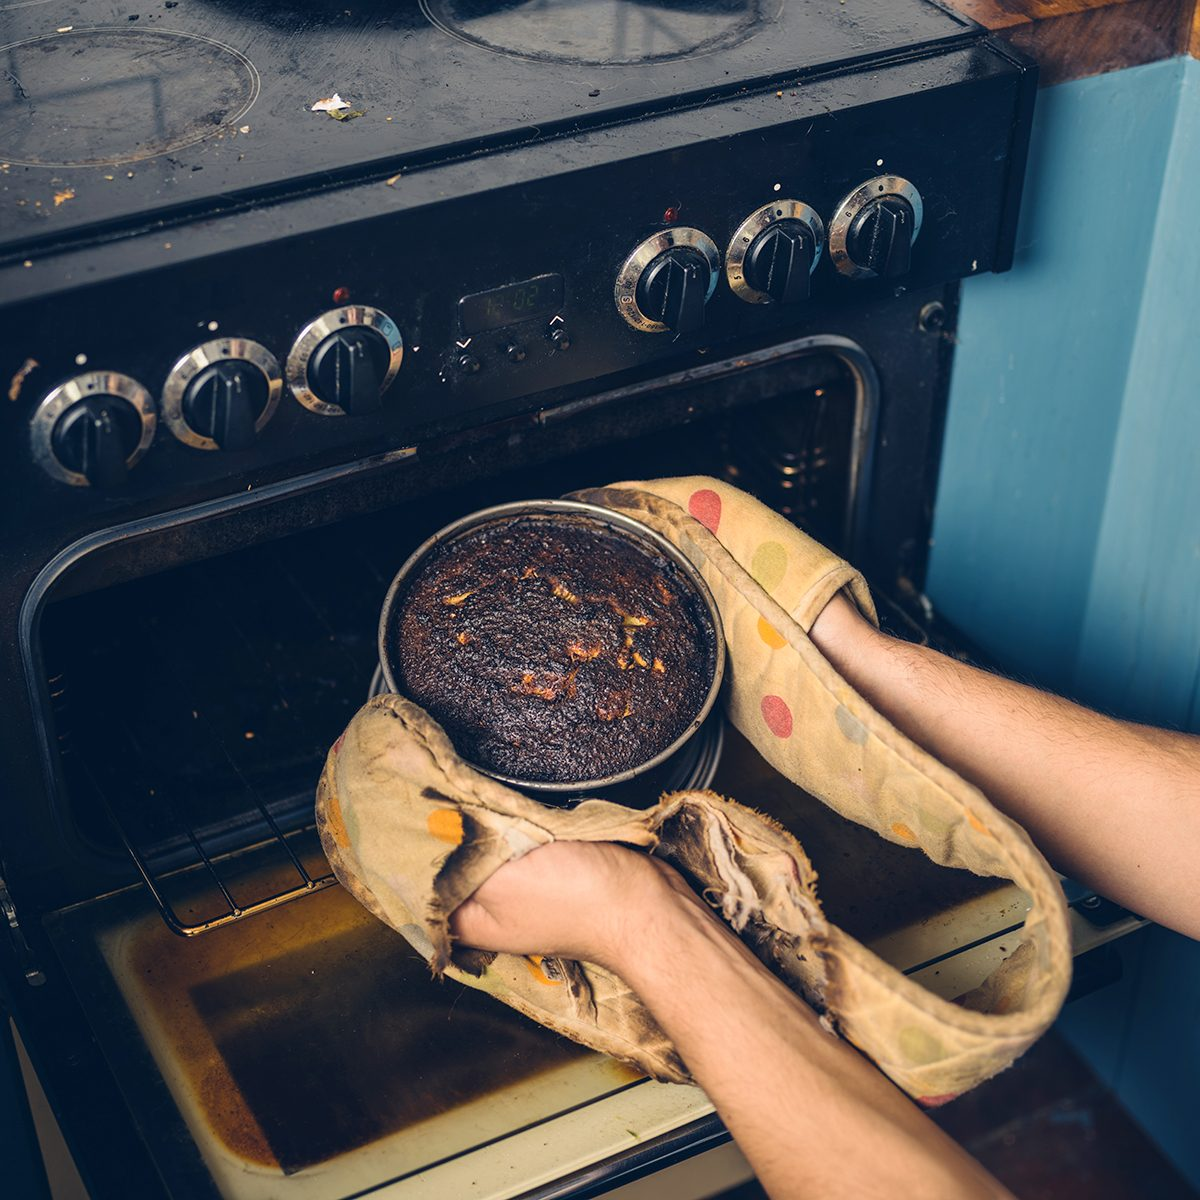 The hands of a man is removing a burnt cake from the oven